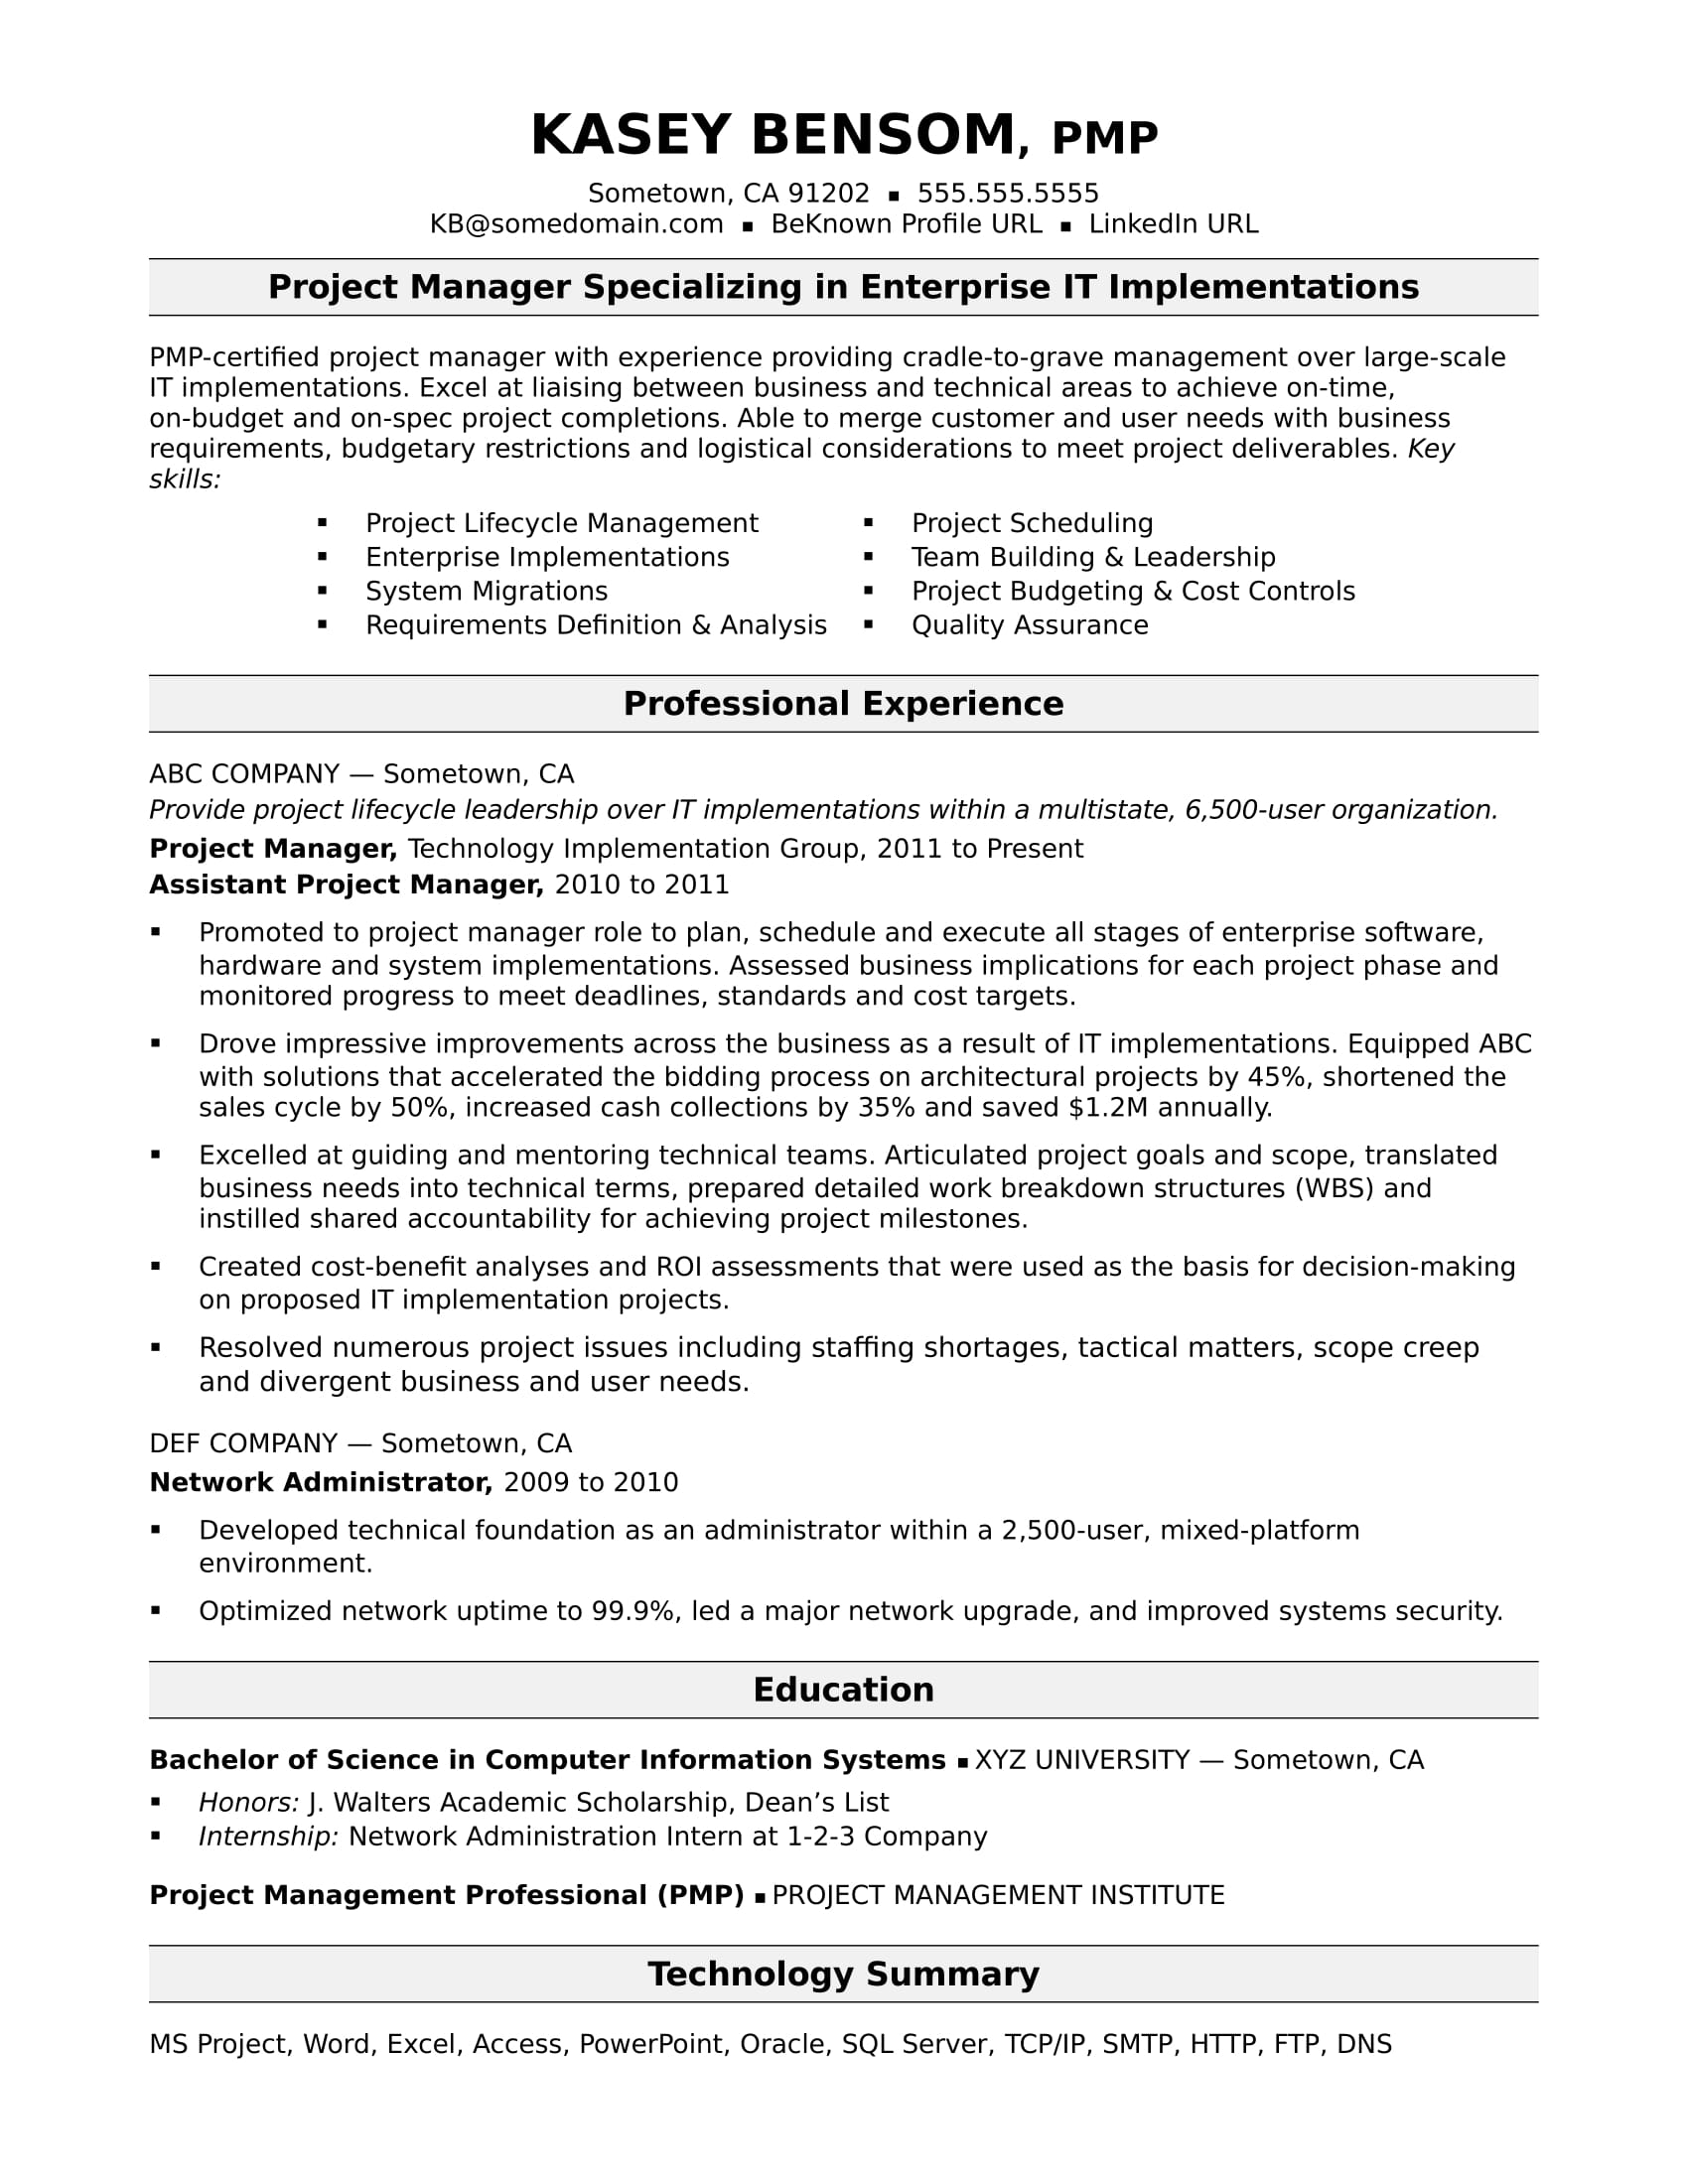 Sample Resume For A Midlevel IT Project Manager